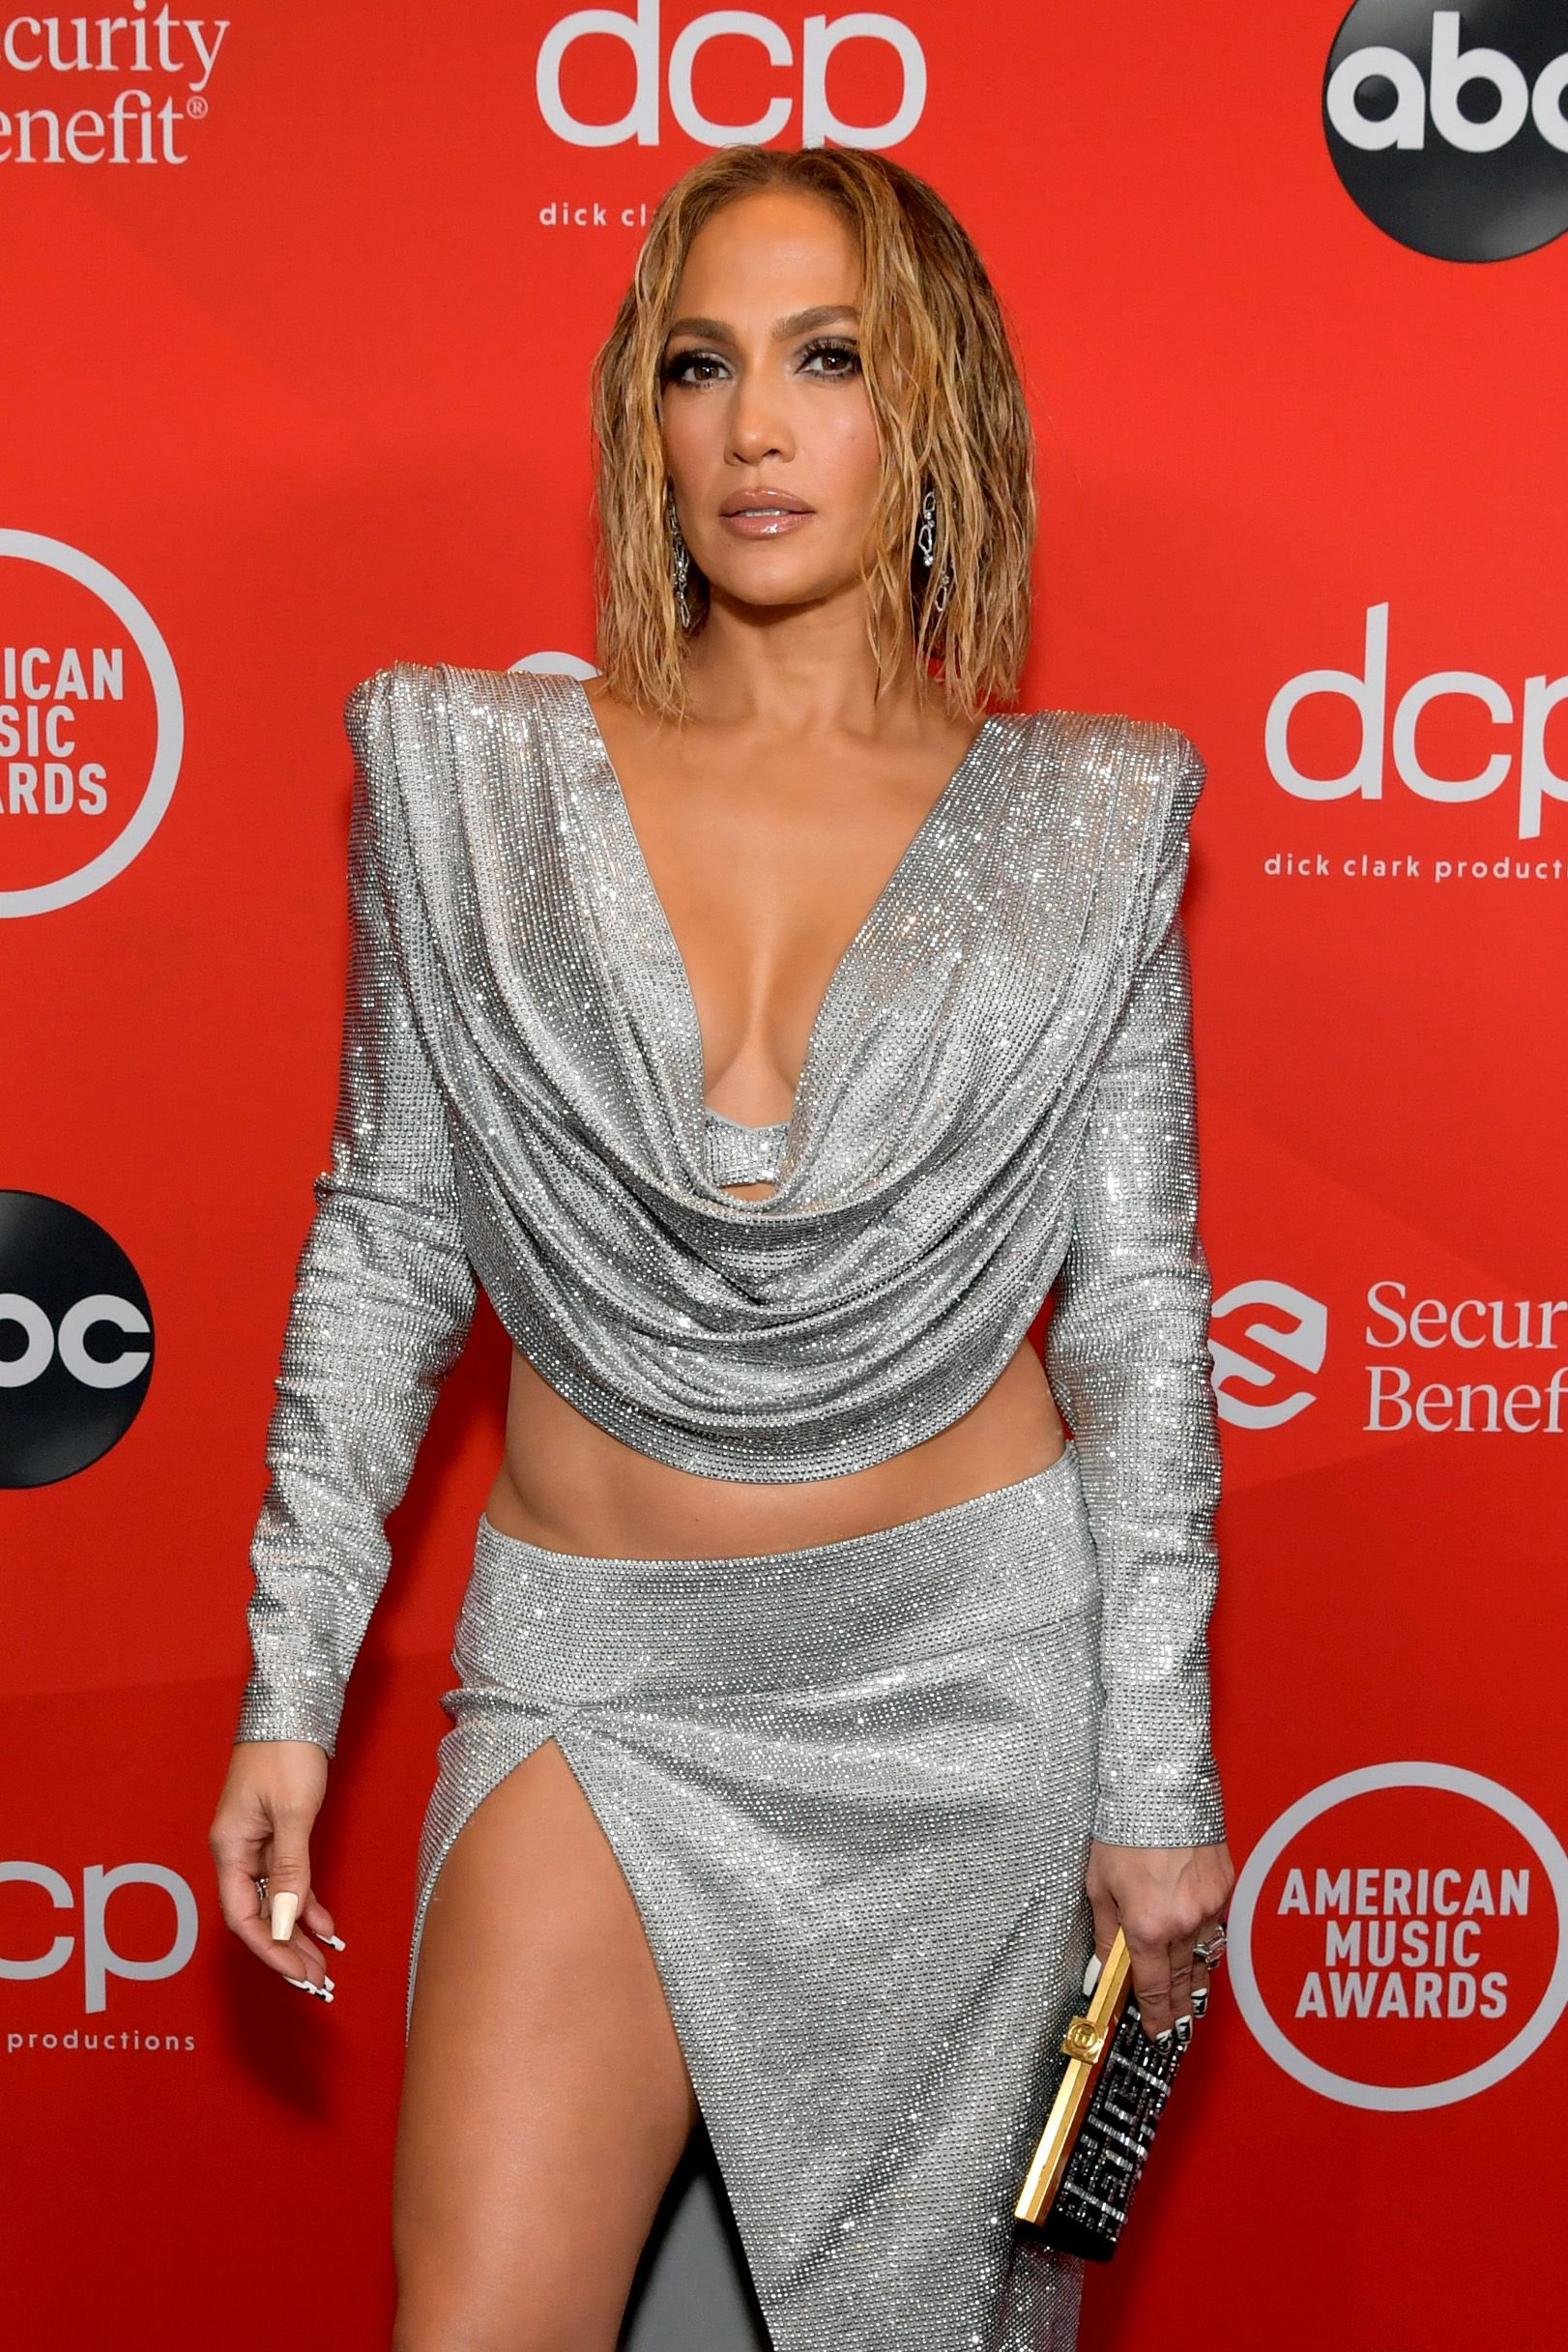 ennifer Lopez at the 2020 American Music Awards at Microsoft Theater on November 22, 2020.   Getty Images